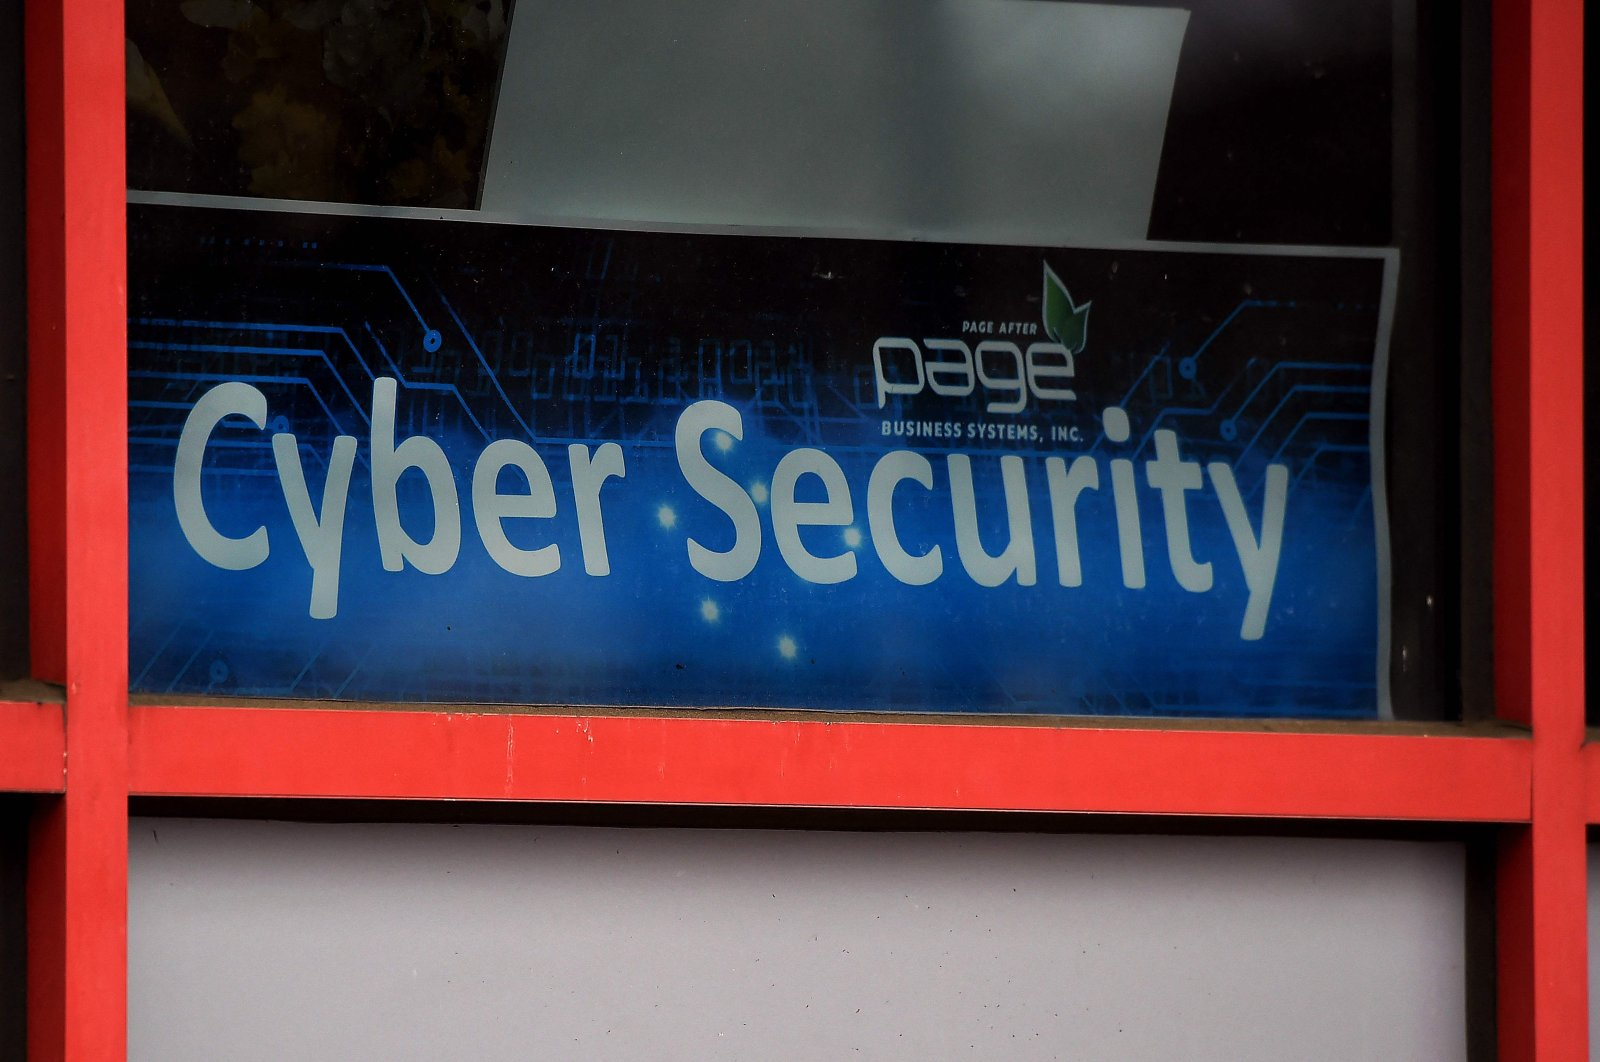 """A """"Cyber Security"""" sign is displayed in the window of a computer store in Arlington, Virginia, U.S., Dec. 18, 2020. (AFP Photo)"""